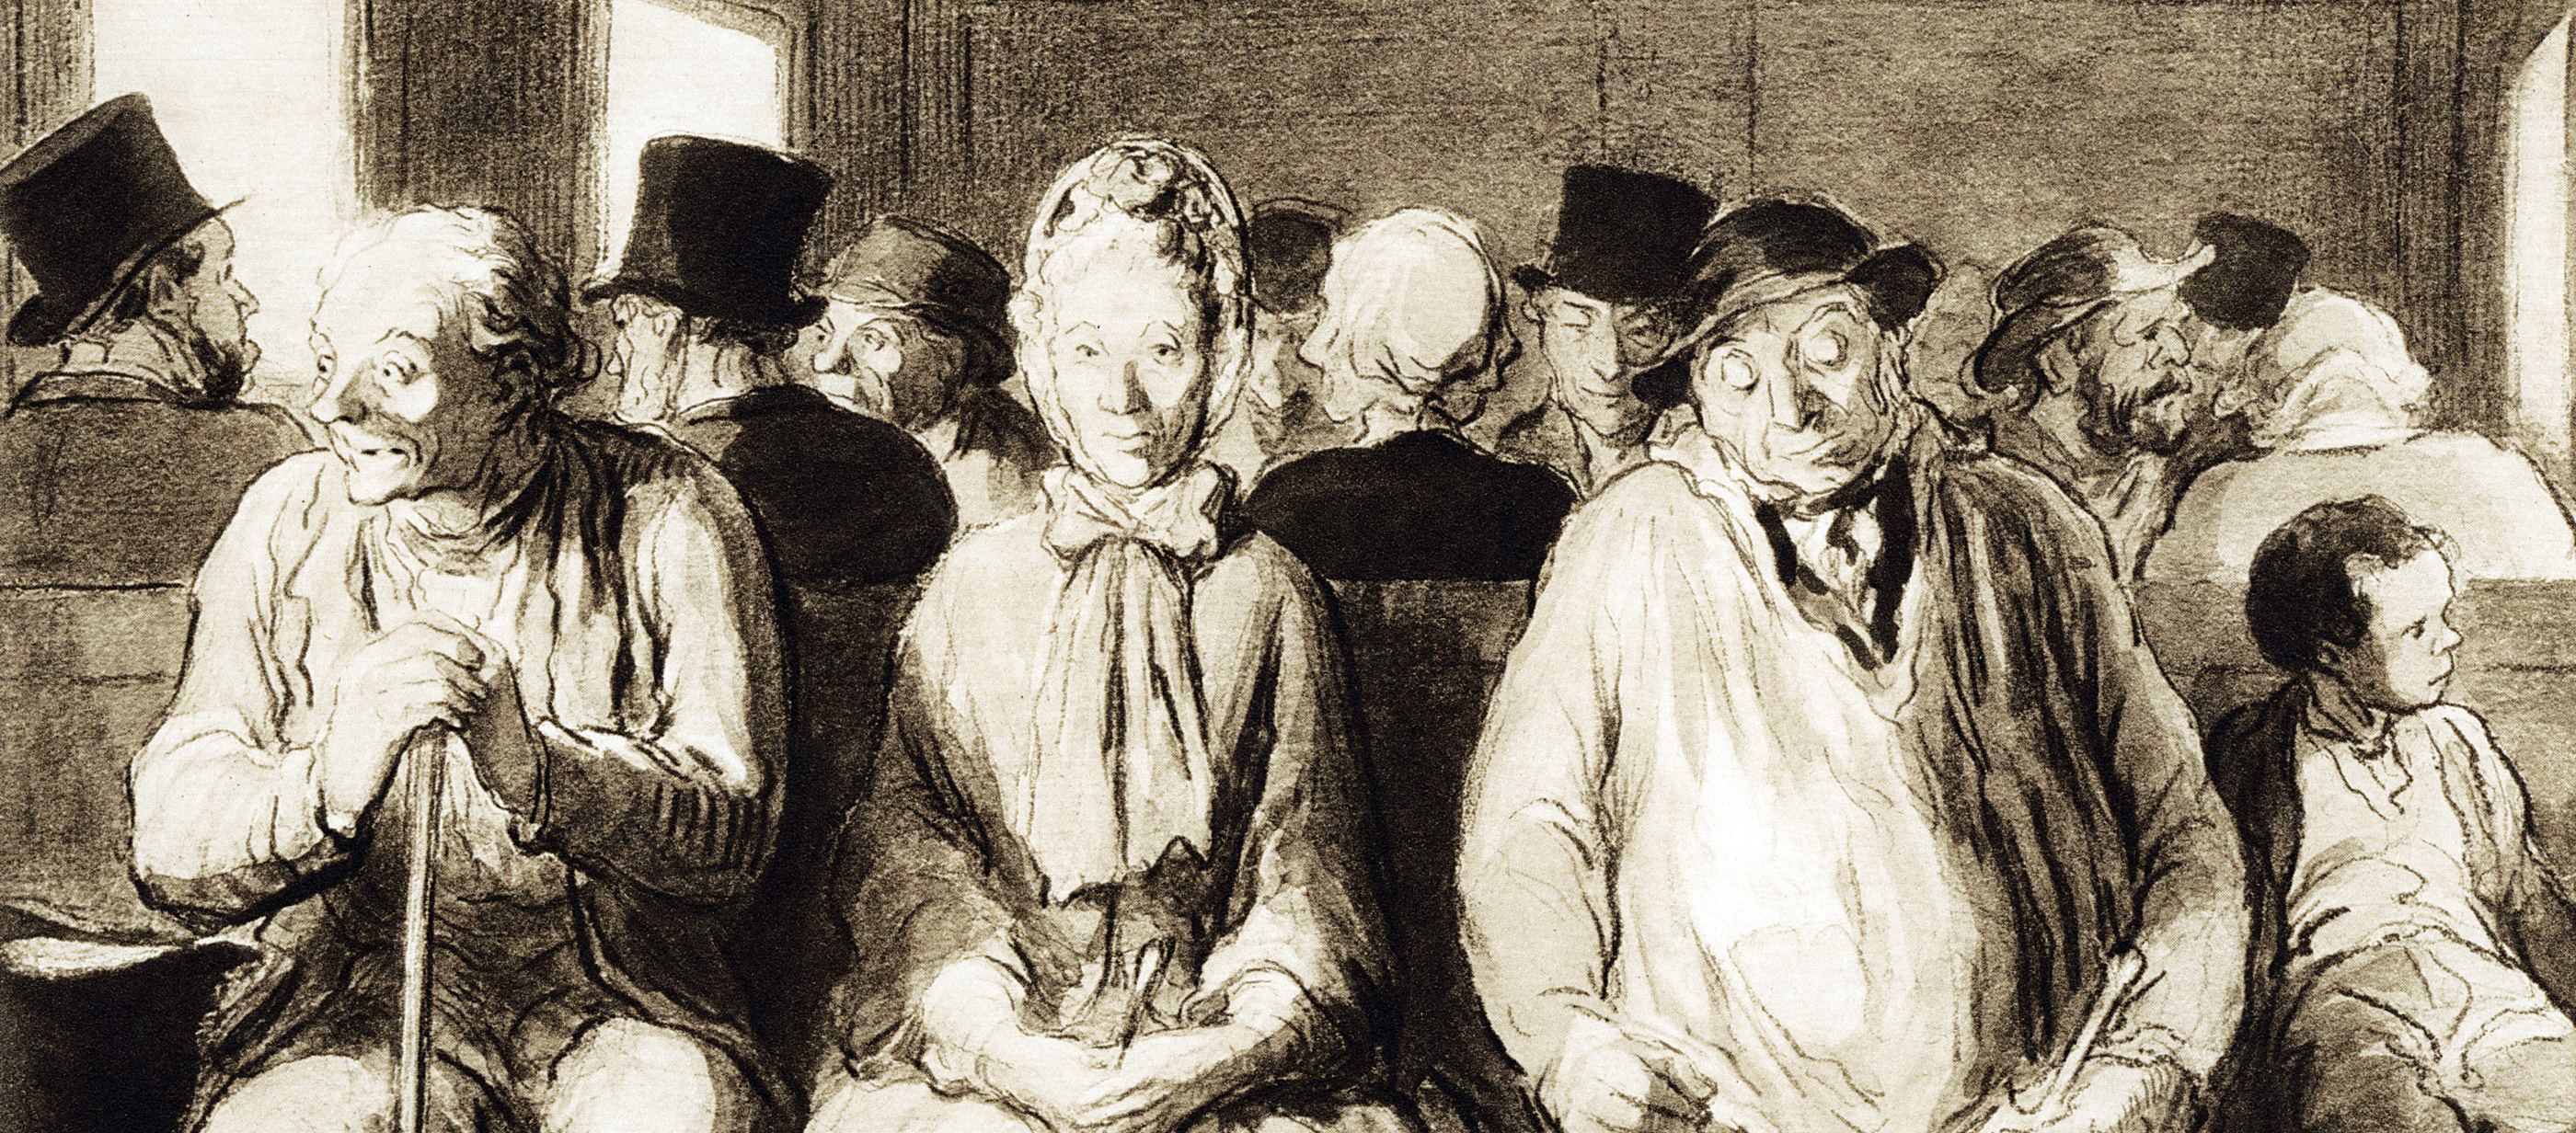 The Third Class Carriage, by Honoré Daumier, c. 1862.